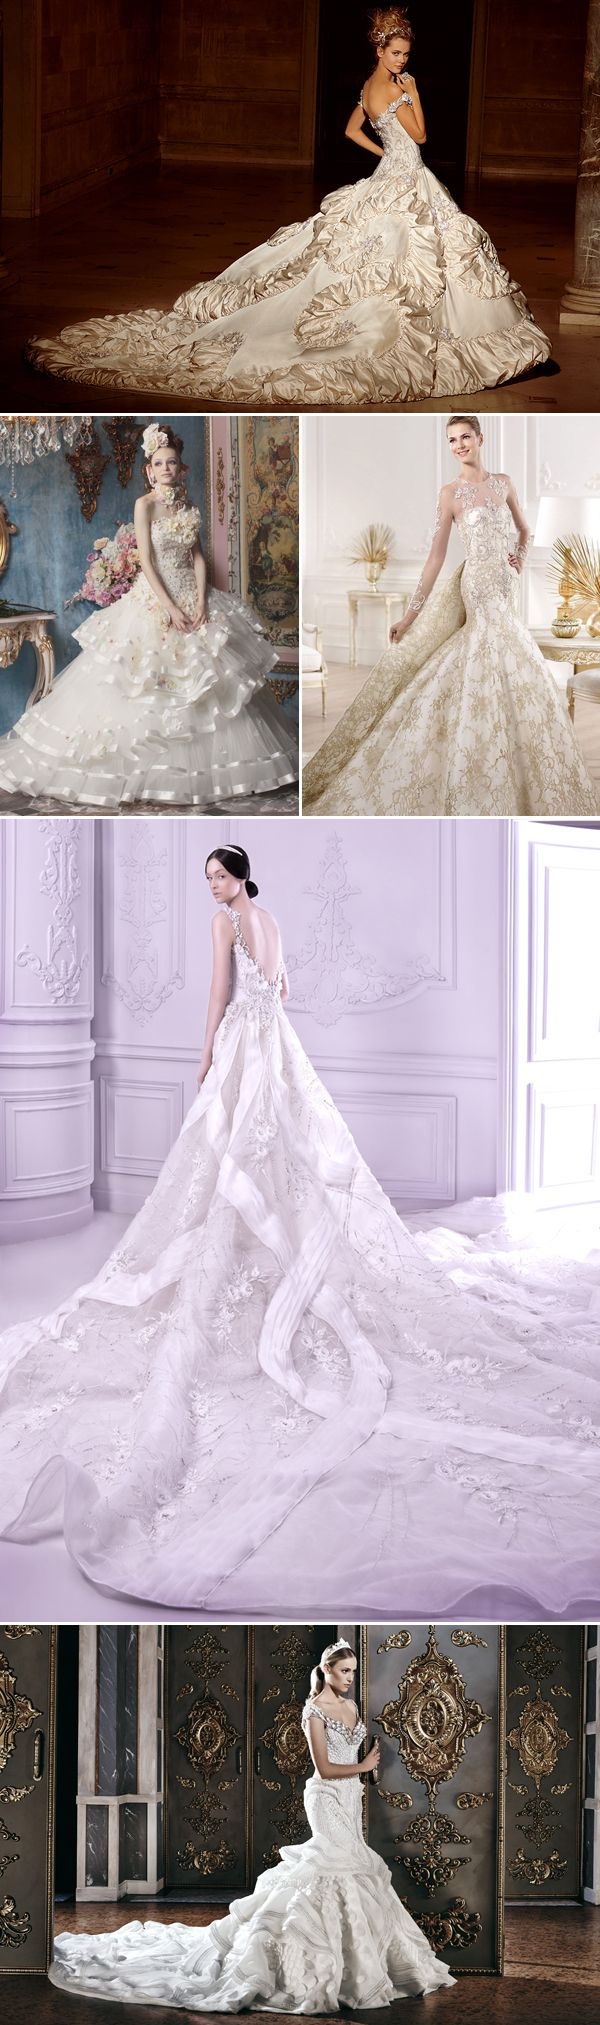 37 Princess Royal Ball Gowns with a touch of Glam!